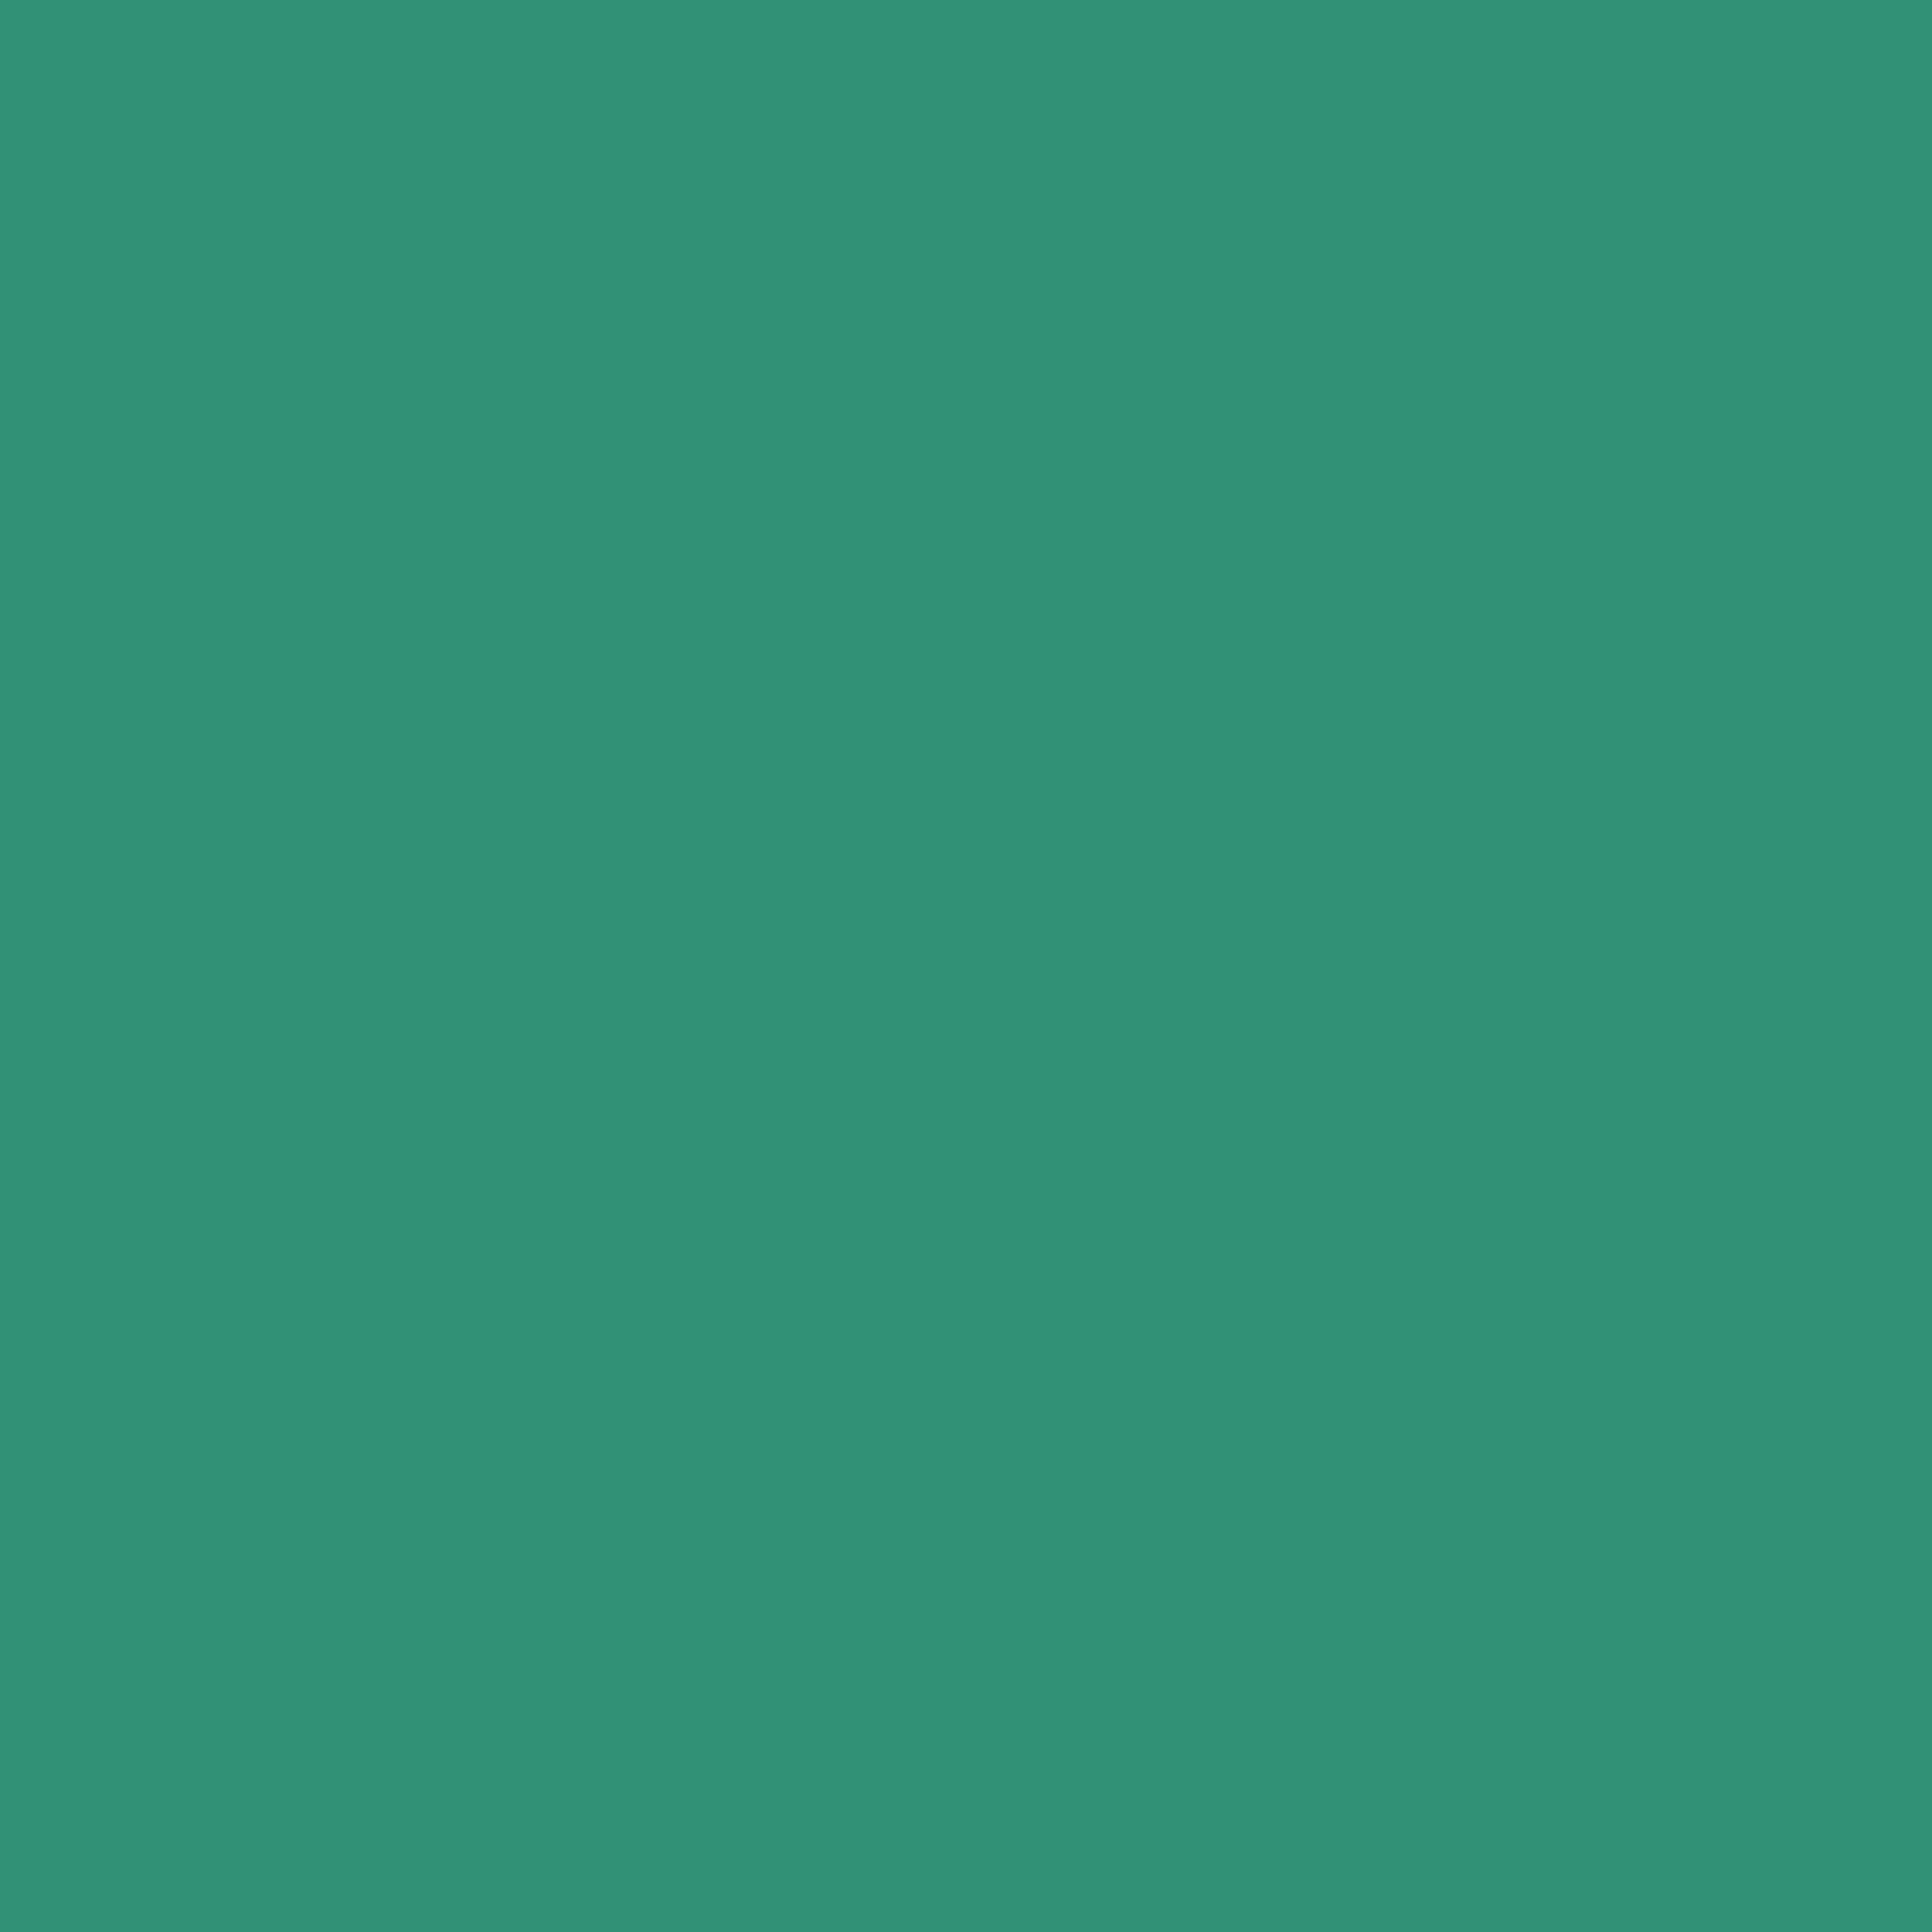 3600x3600 Illuminating Emerald Solid Color Background